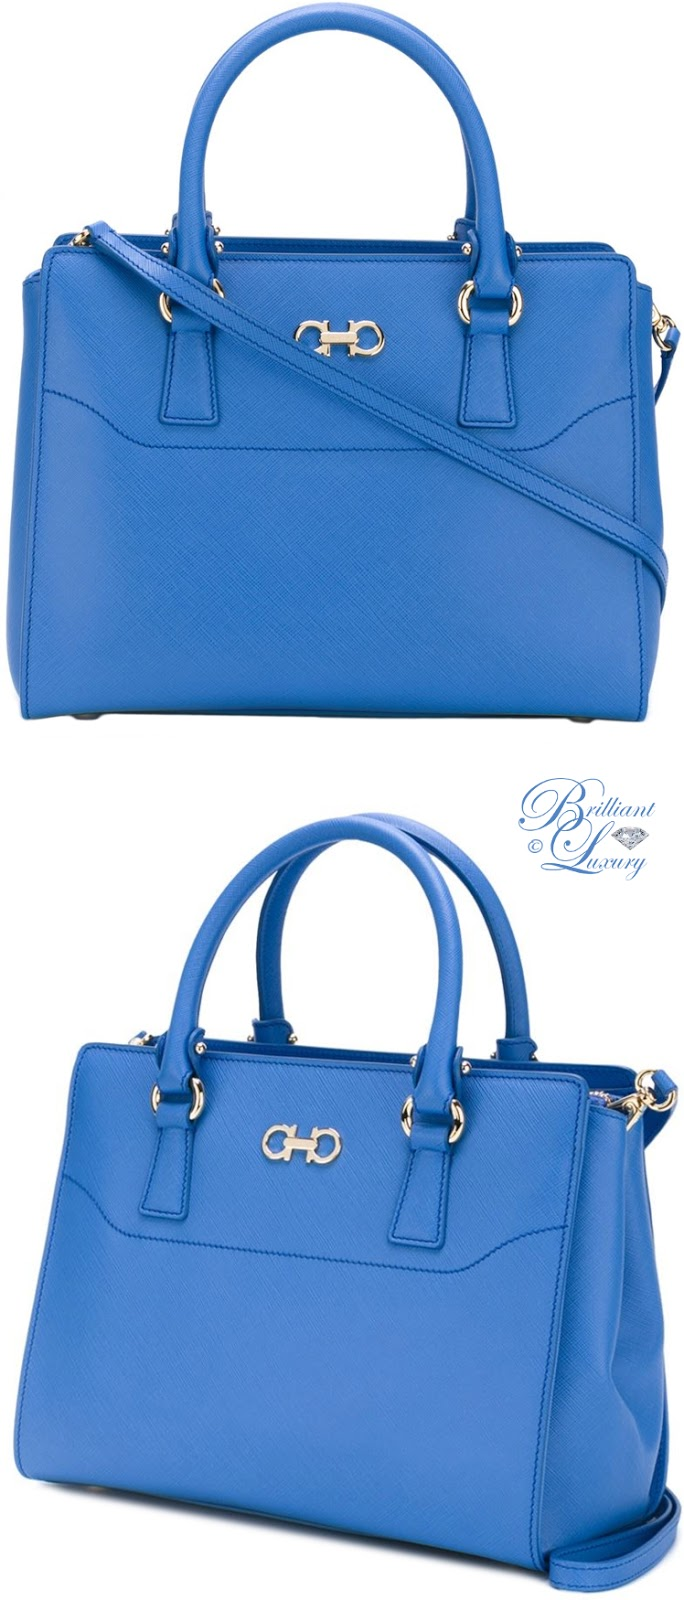 Brilliant Luxury ♦ Salvatore Ferragamo double Gancio tote